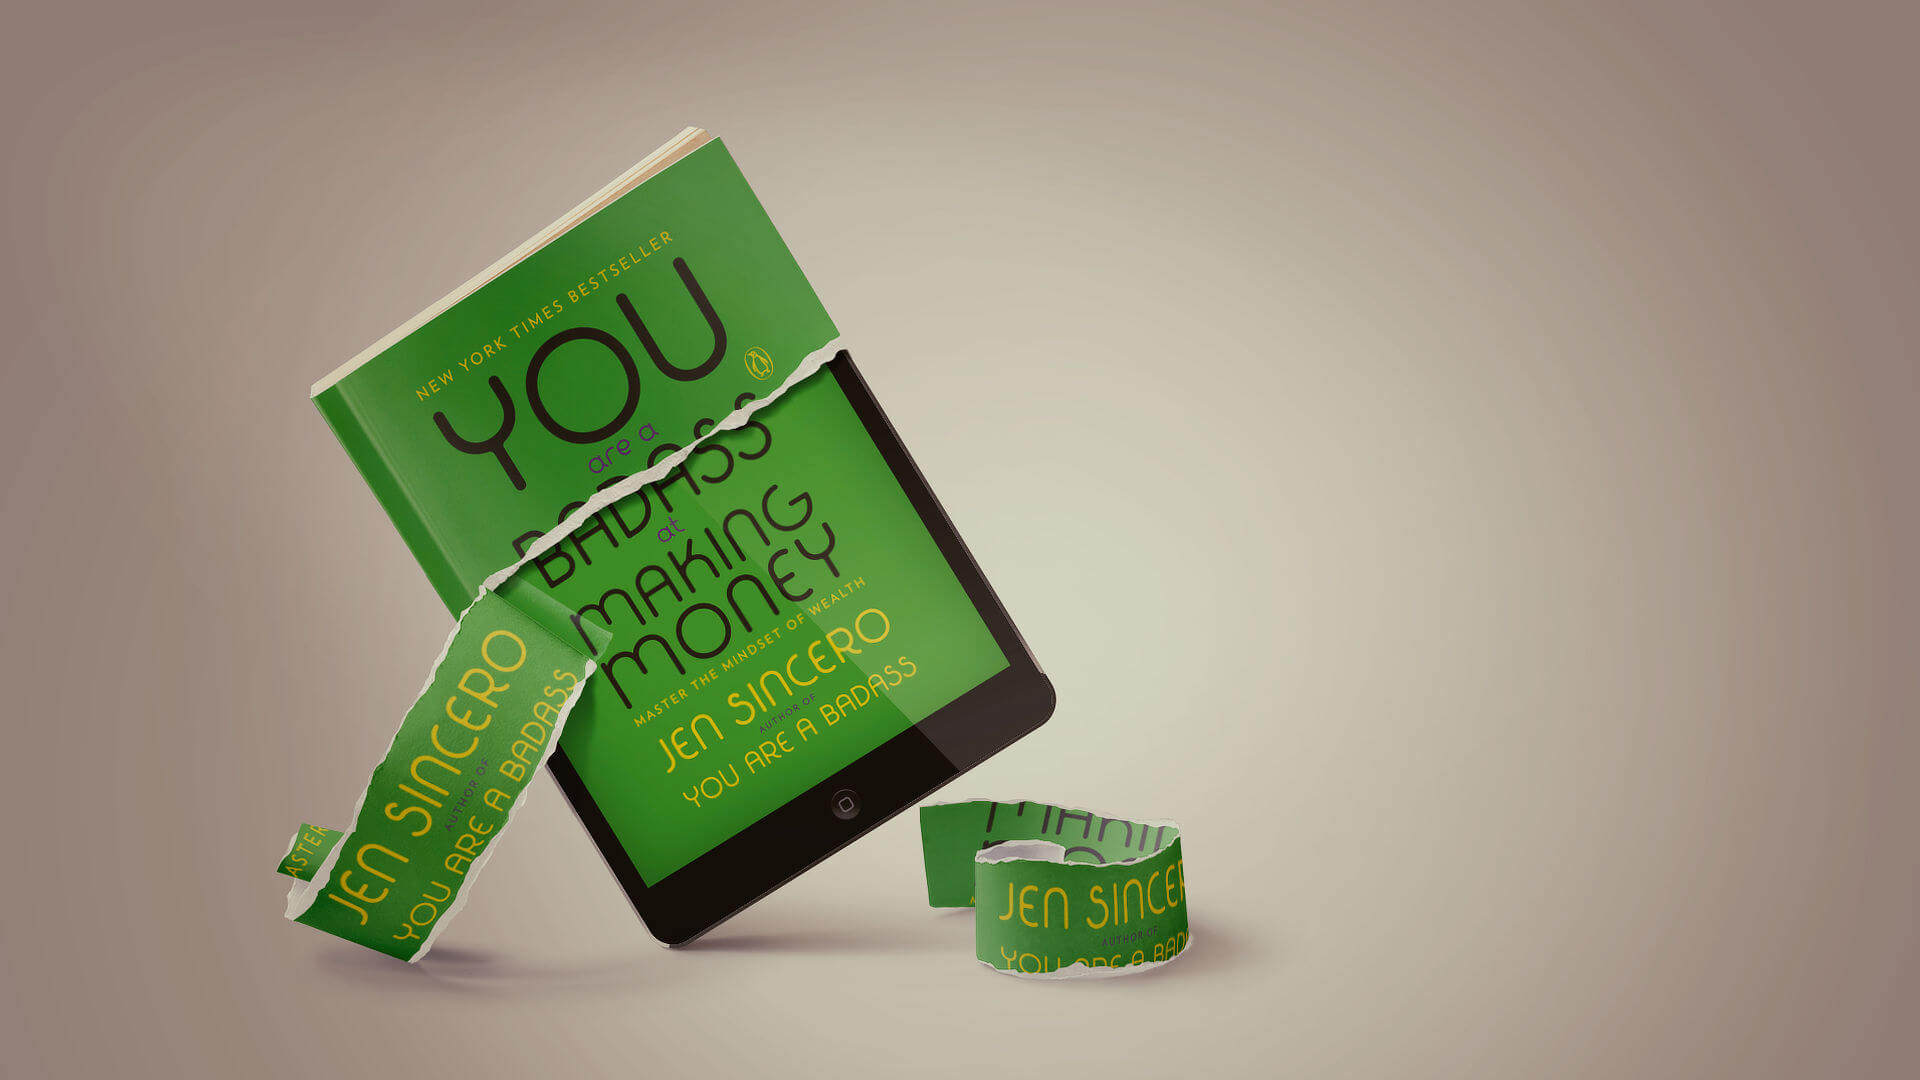 What's your relationship with money as an entrepreneur: You are a badass at making money by Jen Sincero